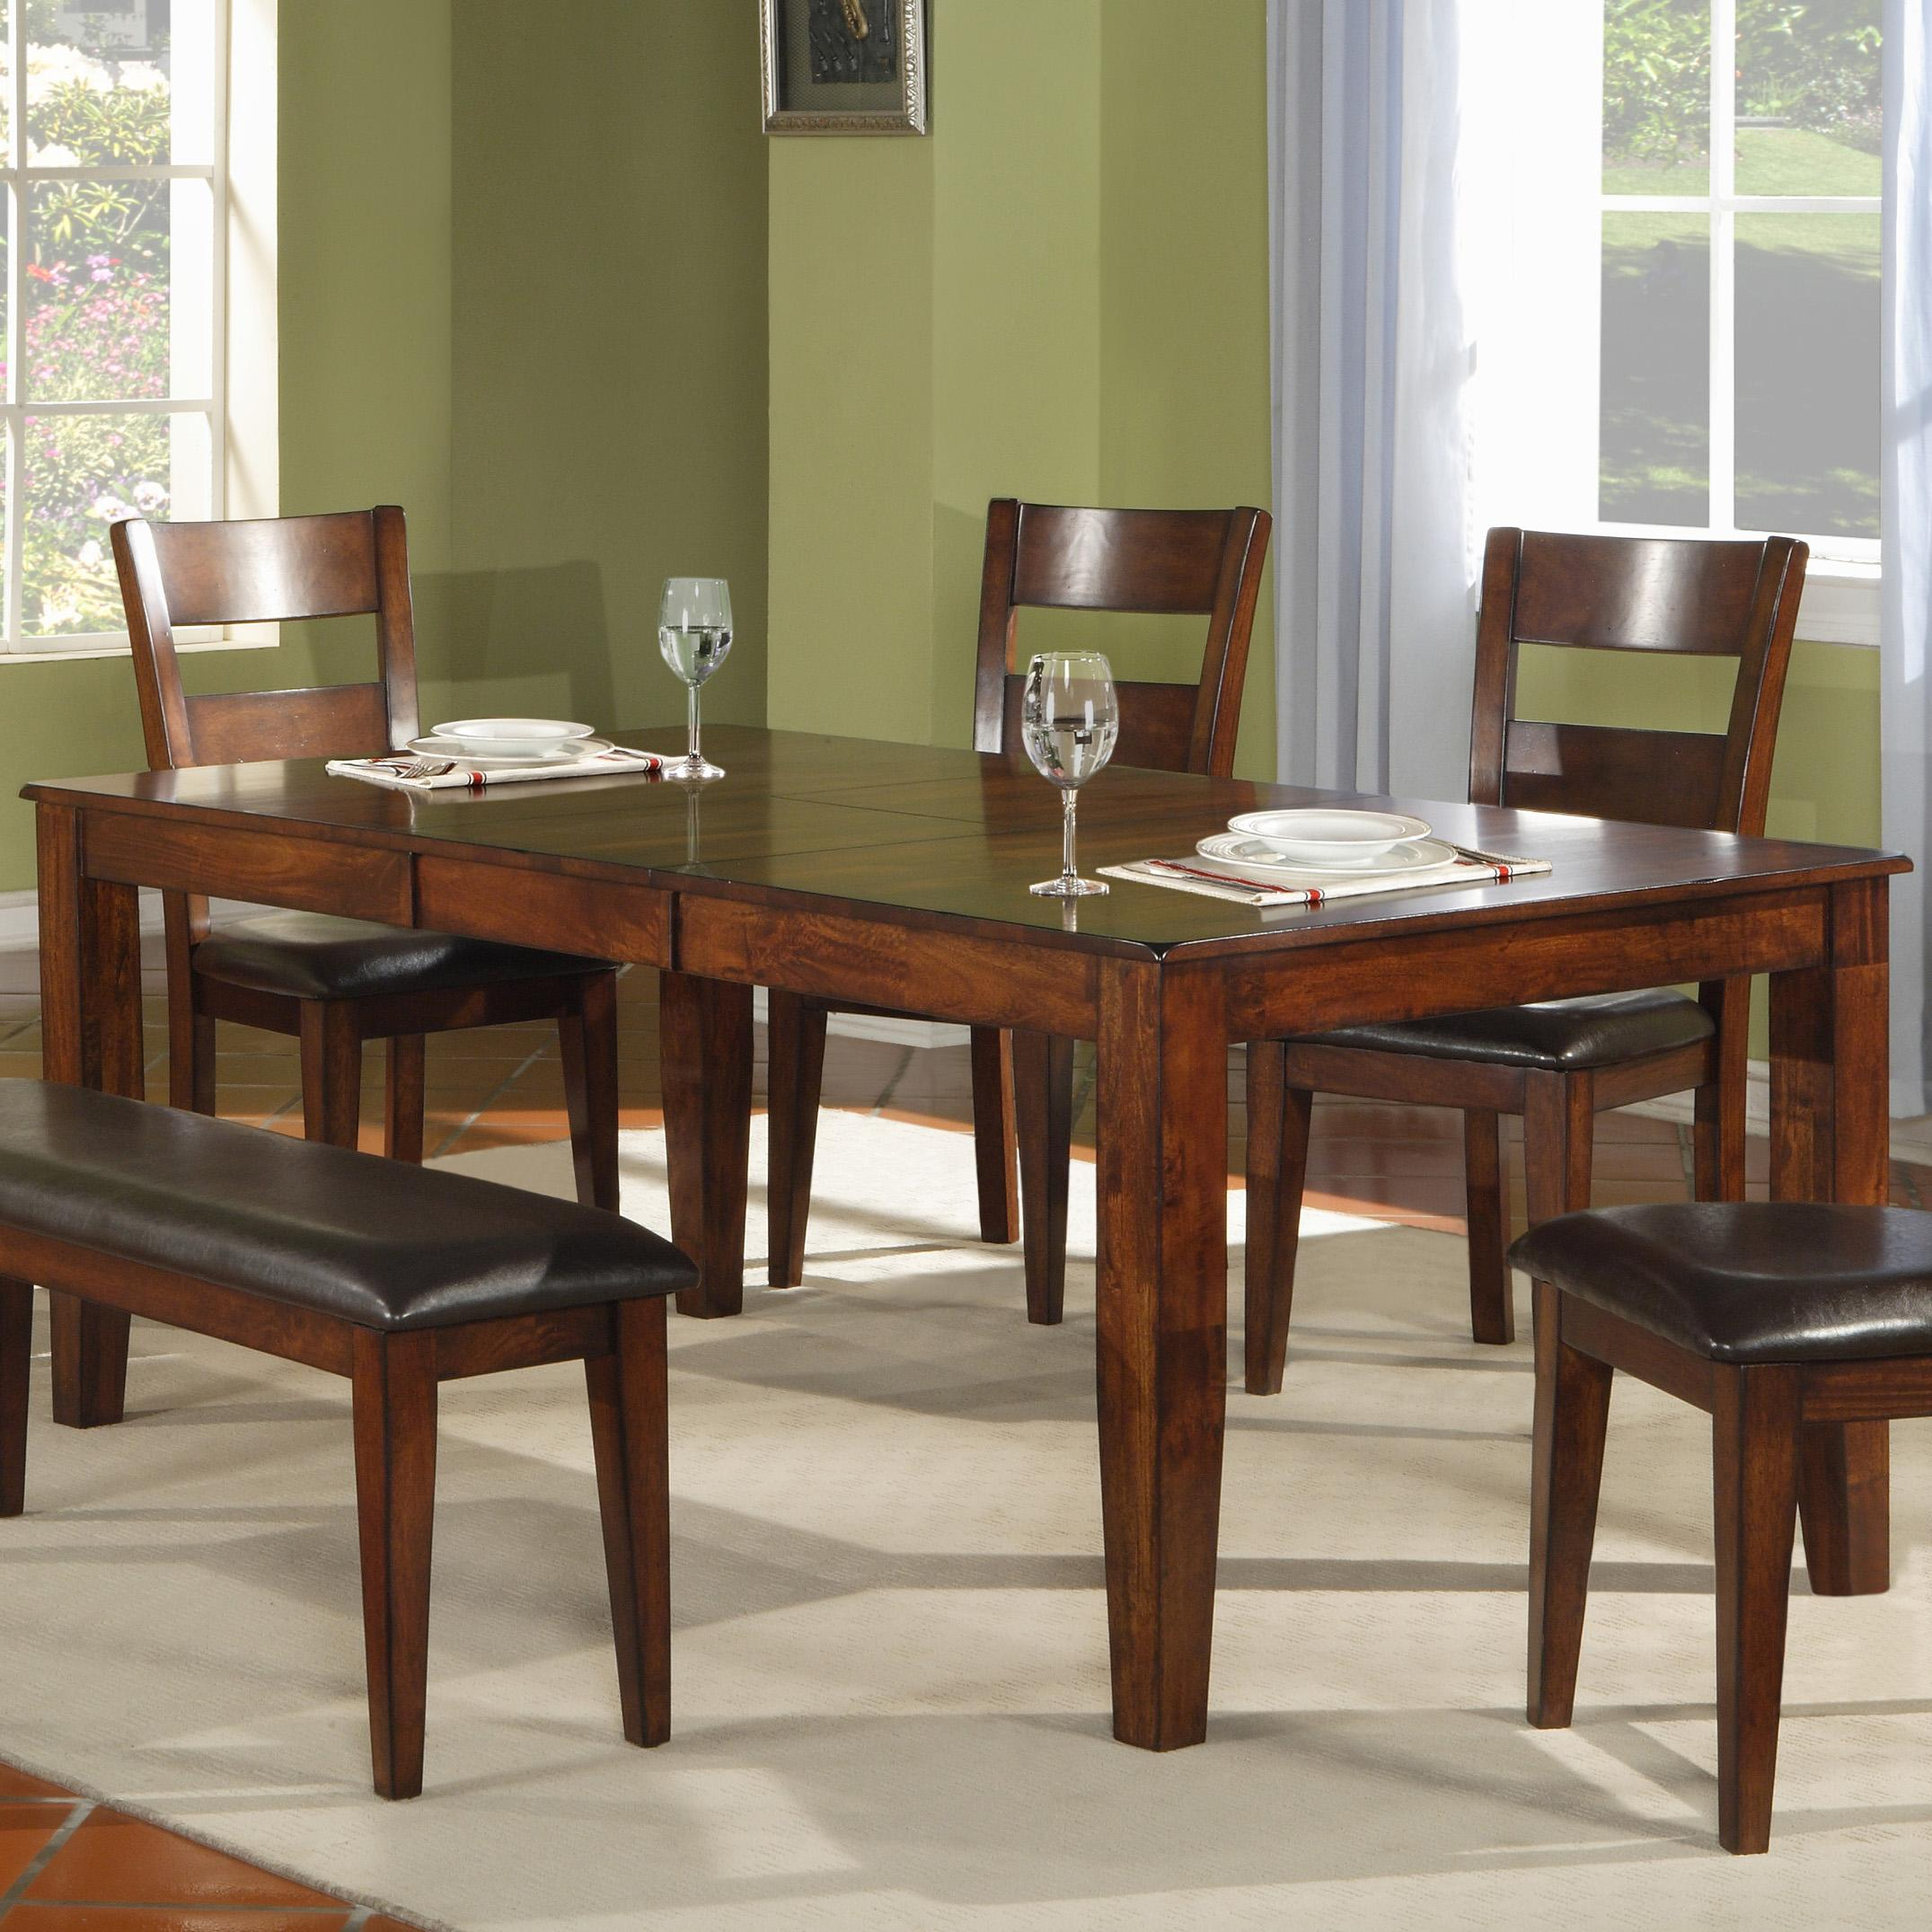 1279 Leg Table by Warehouse M at Pilgrim Furniture City